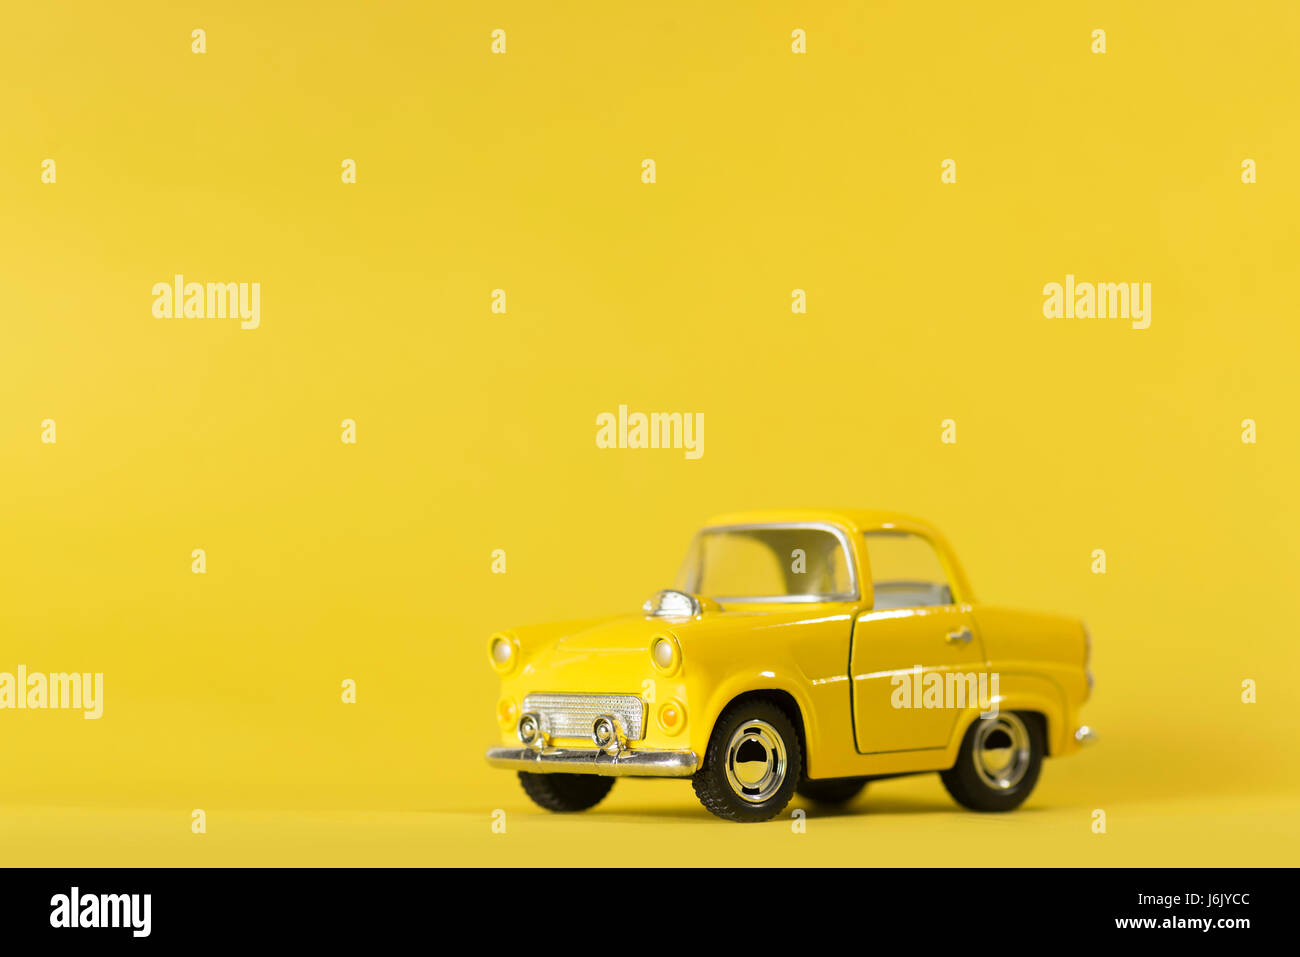 Yellow toy car on a yellow background. Stock Photo